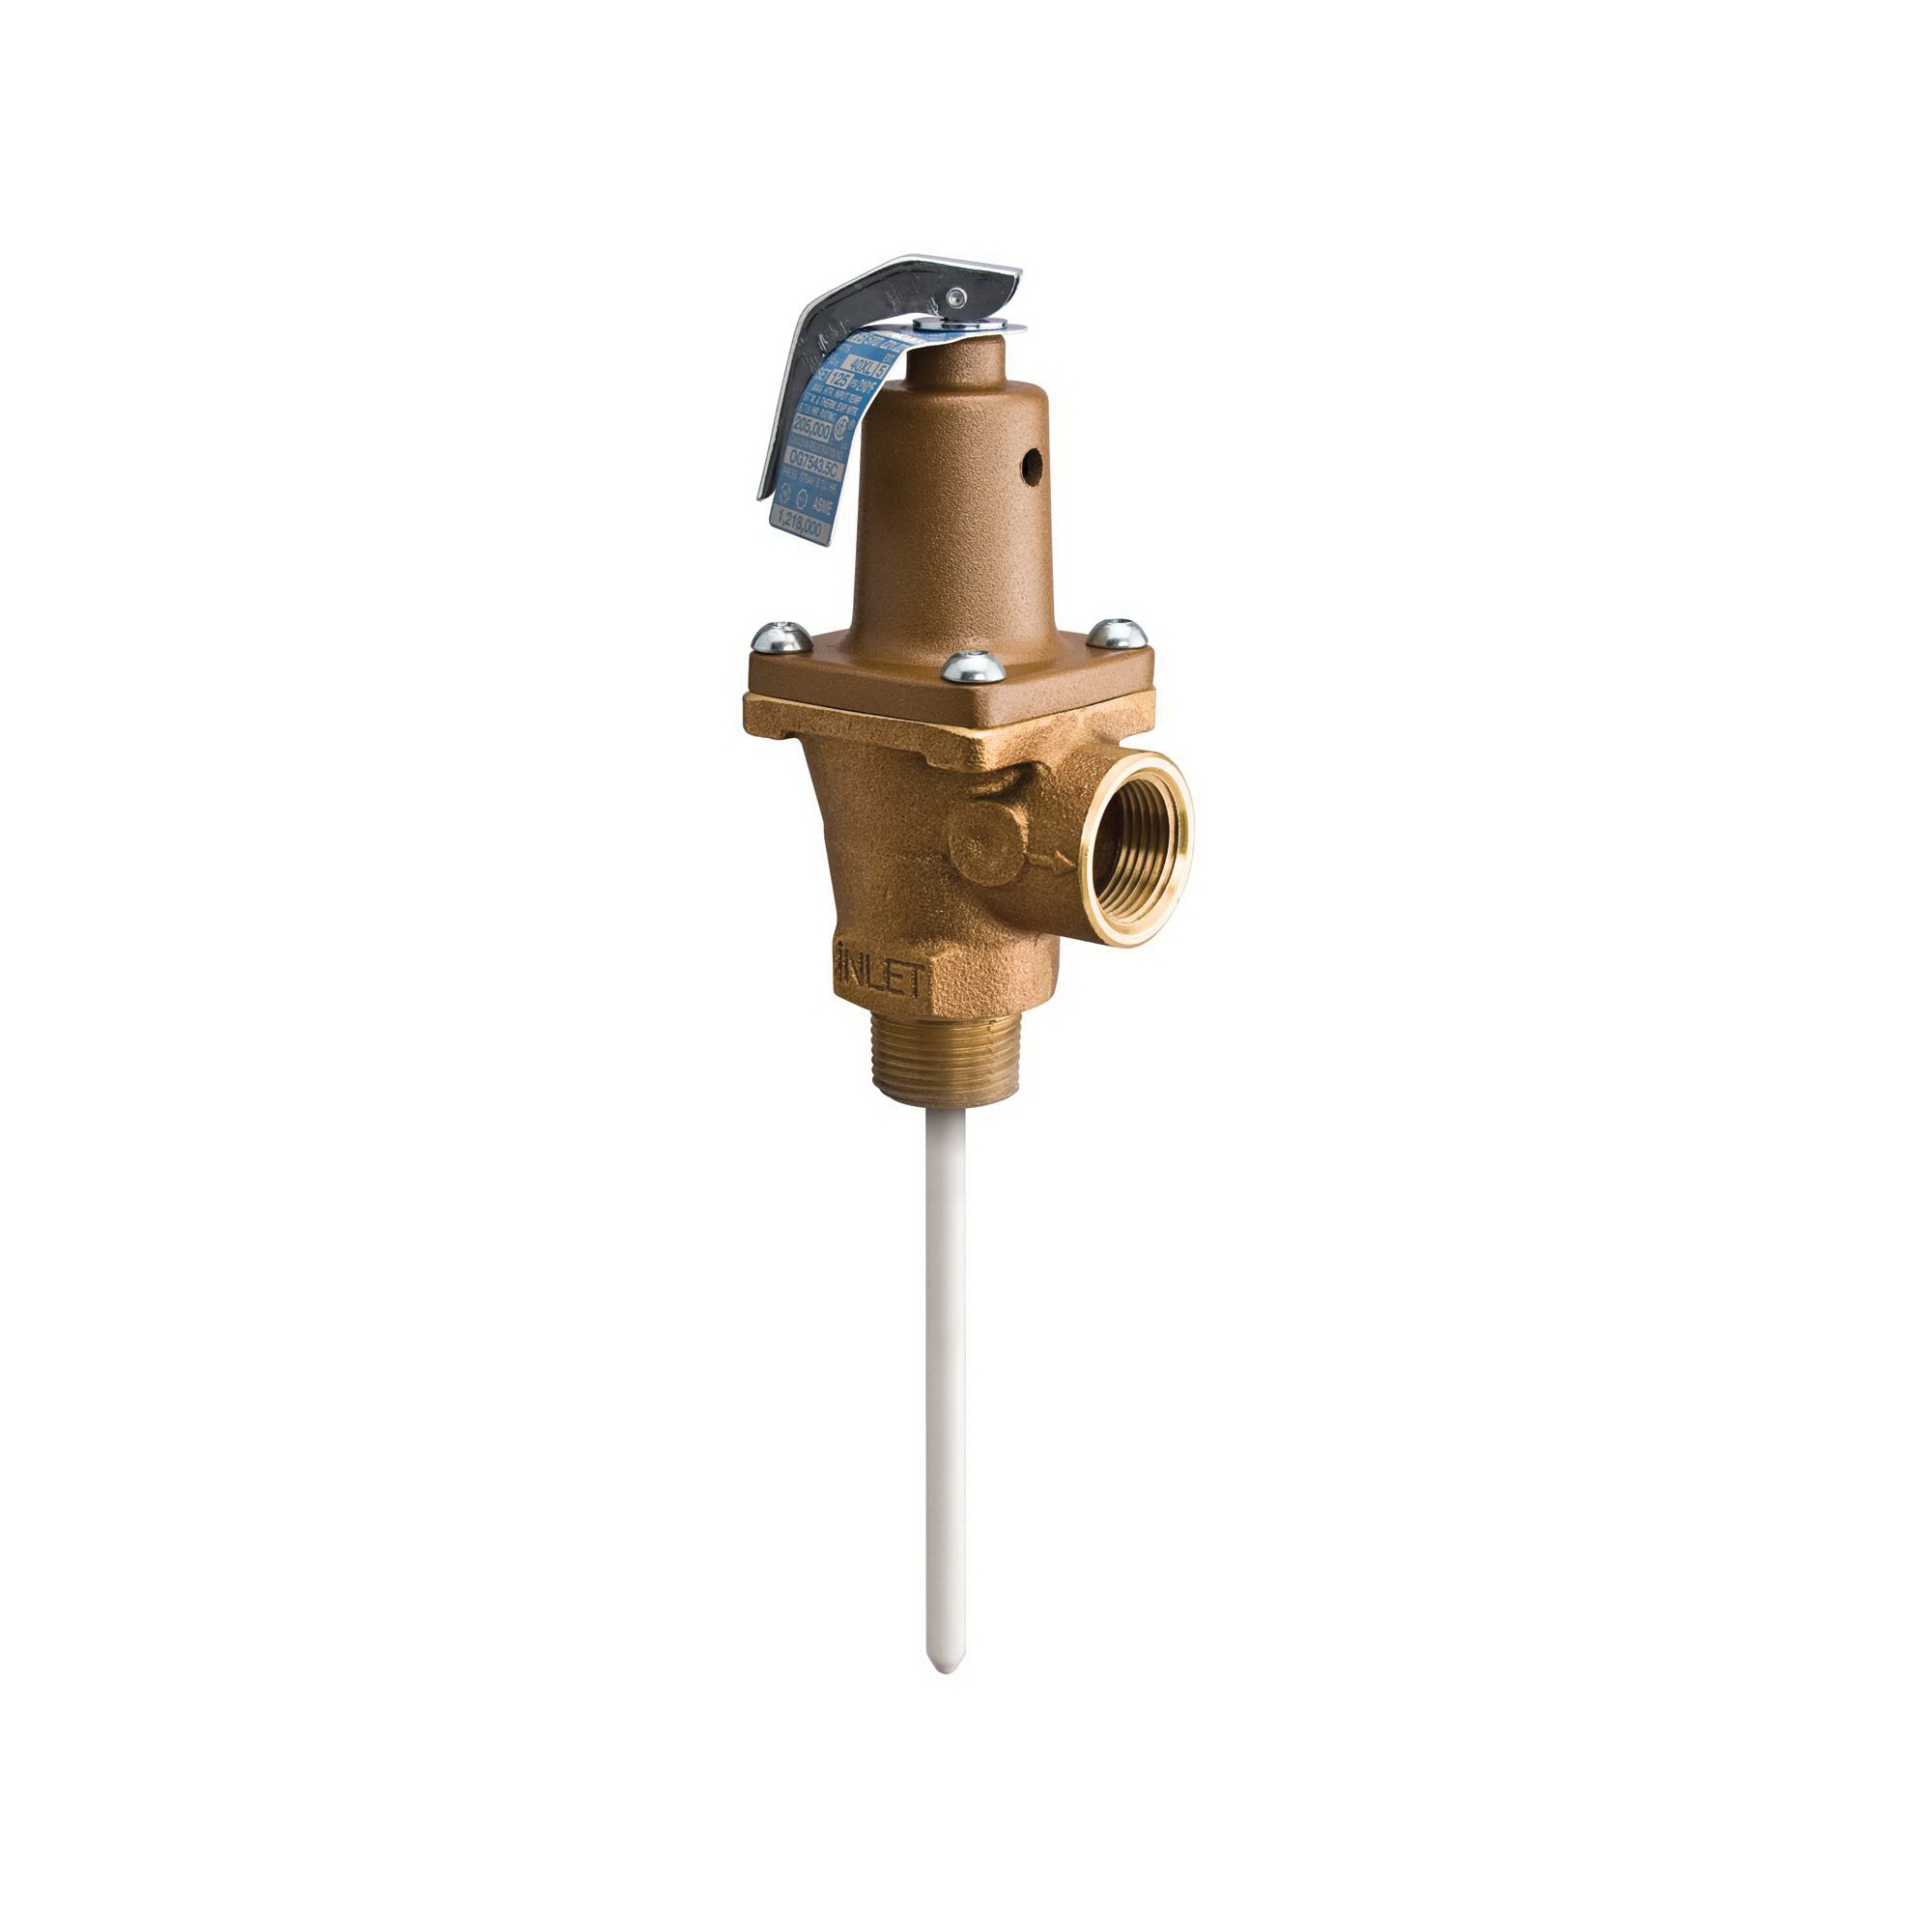 WATTS® 40XL Automatic Re-Seating Temperature and Pressure Relief Valve, 1 in, MNPT x FNPT, Bronze